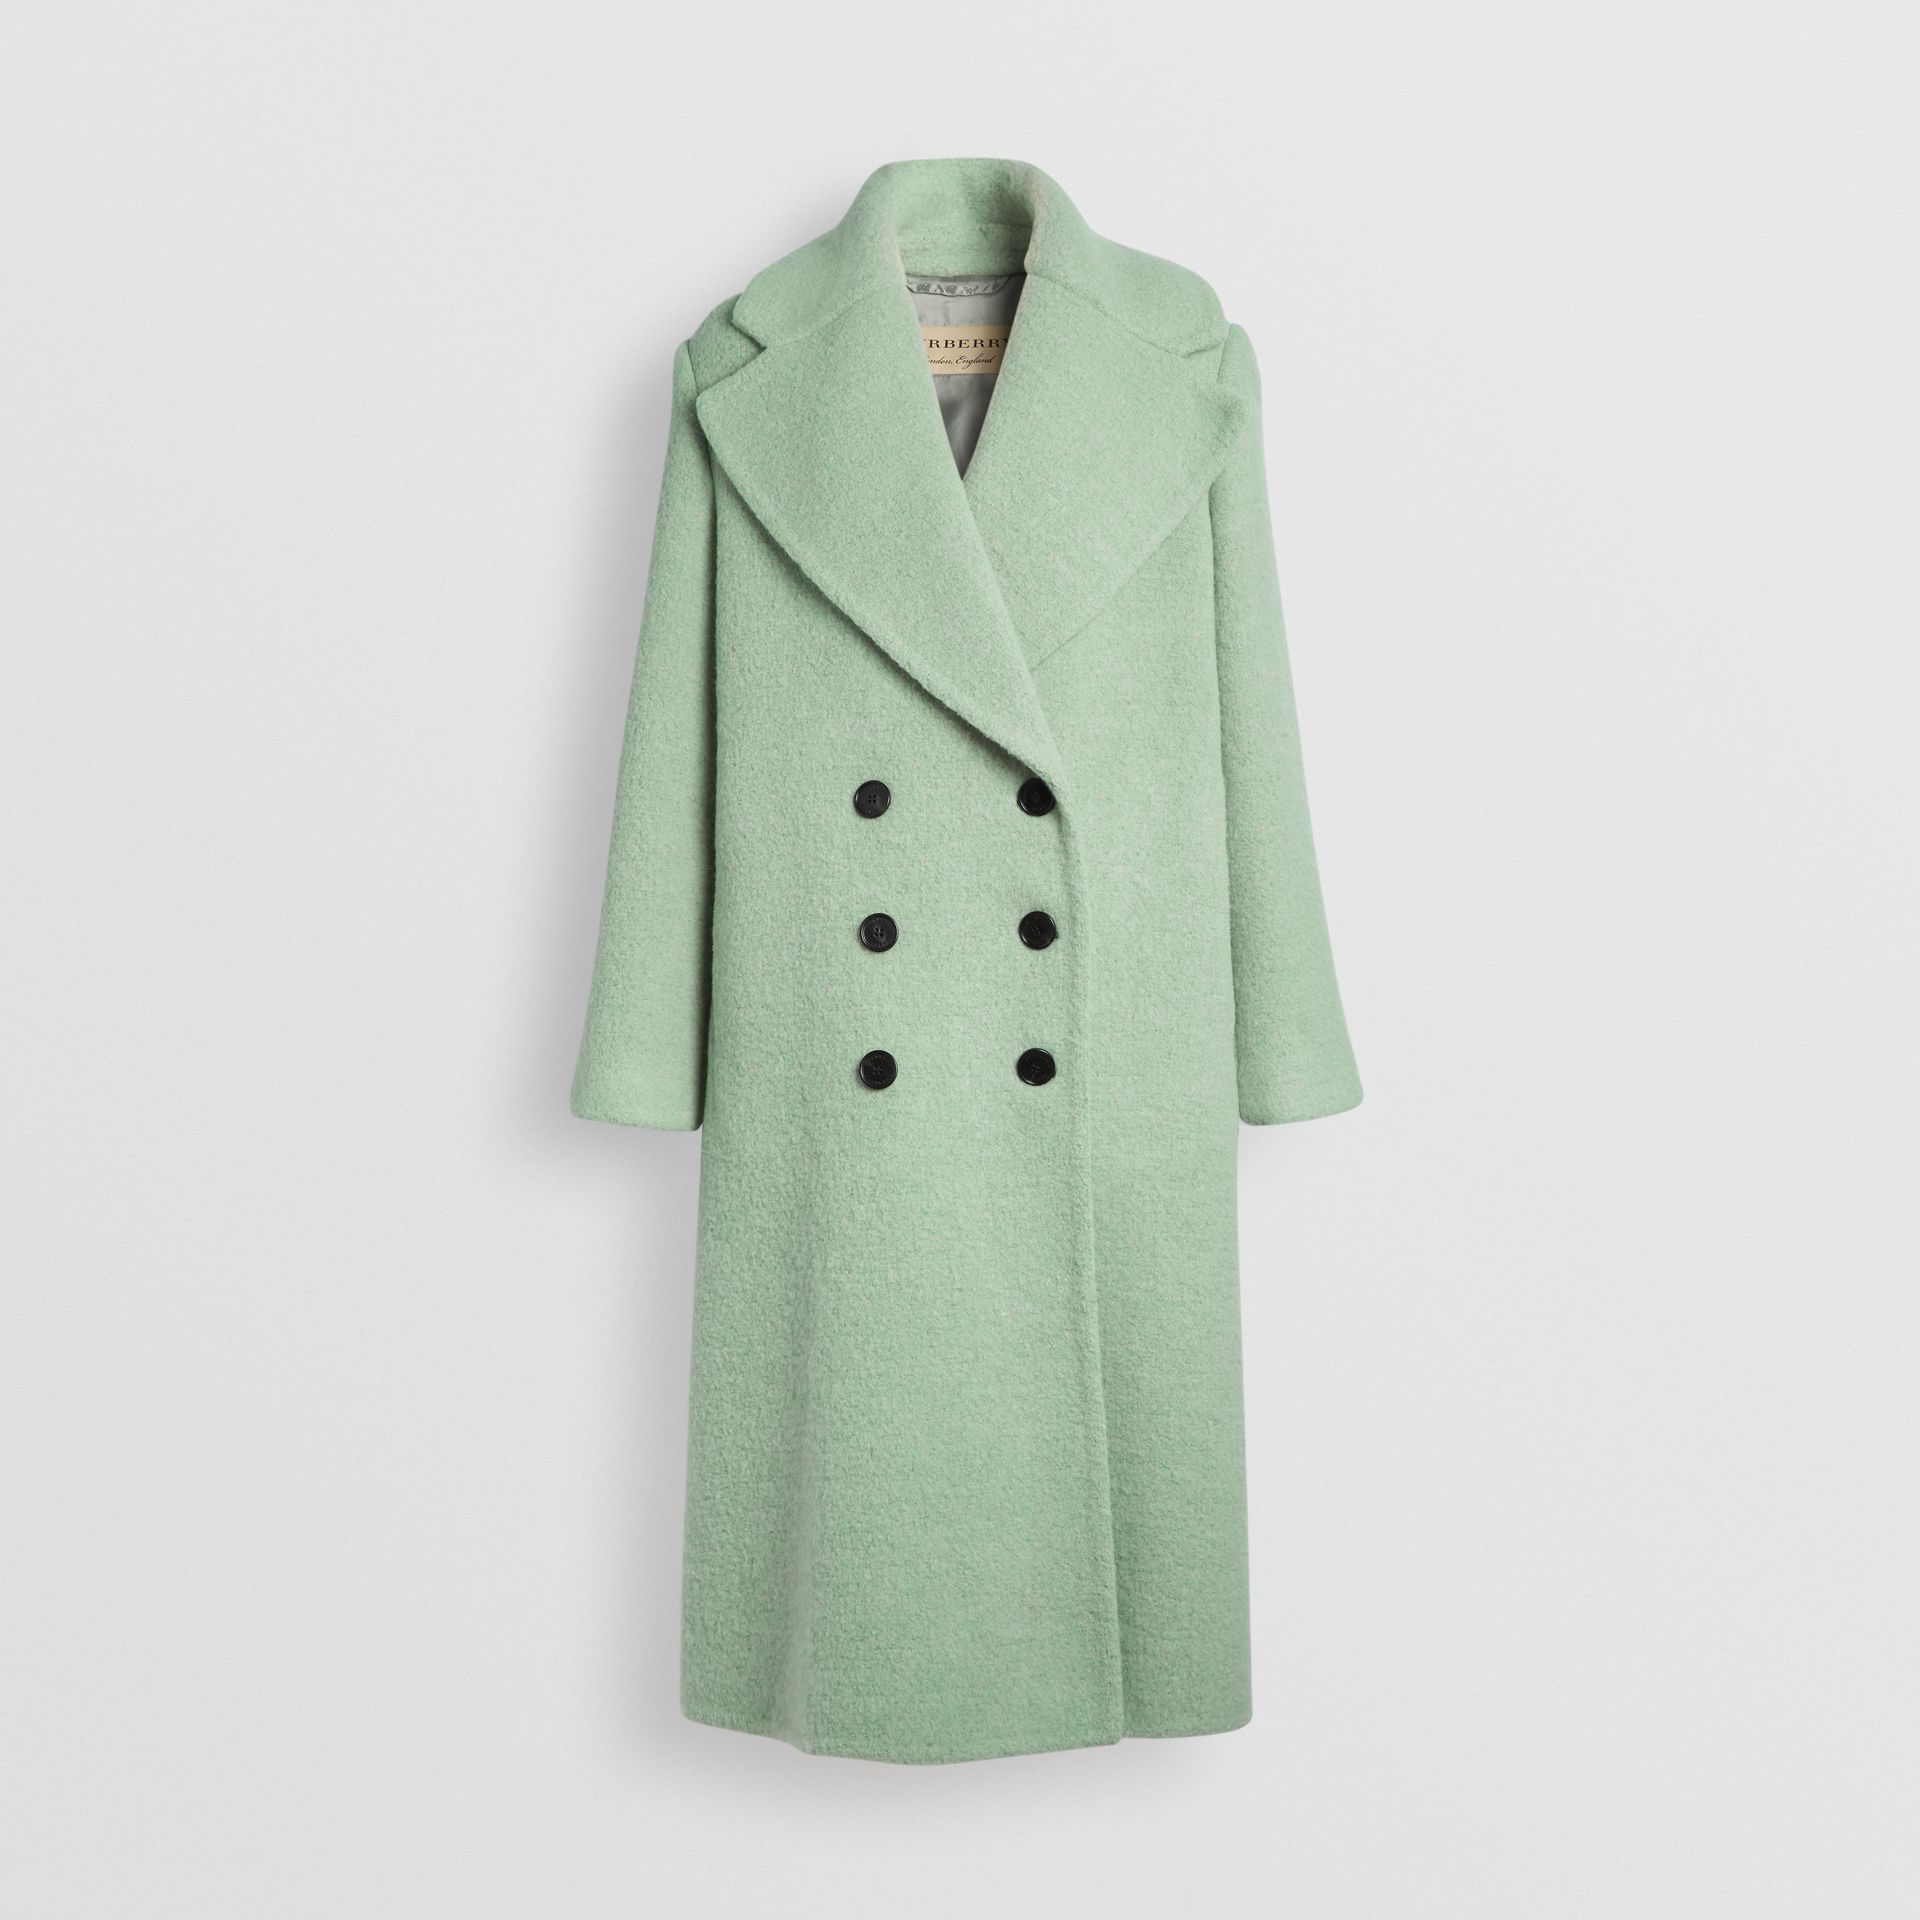 Double-faced Wool Alpaca Blend Oversized Coat in Celadon Green - Women | Burberry Hong Kong - gallery image 3